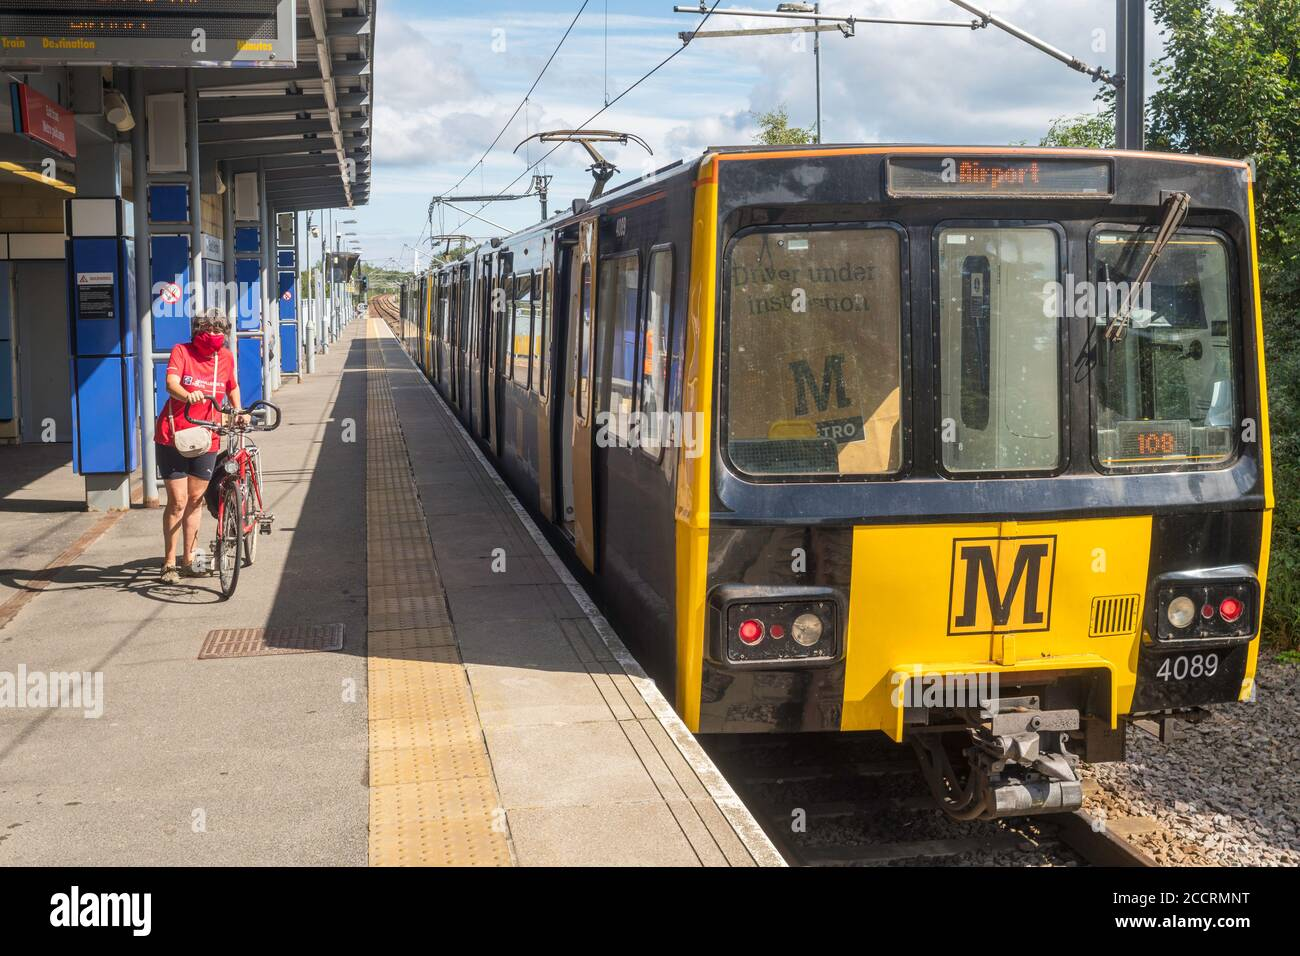 mature-female-cyclist-wearing-face-mask-with-bike-on-tyne-and-wear-metro-south-hylton-station-north-east-england-uk-2CCRMNT.jpg